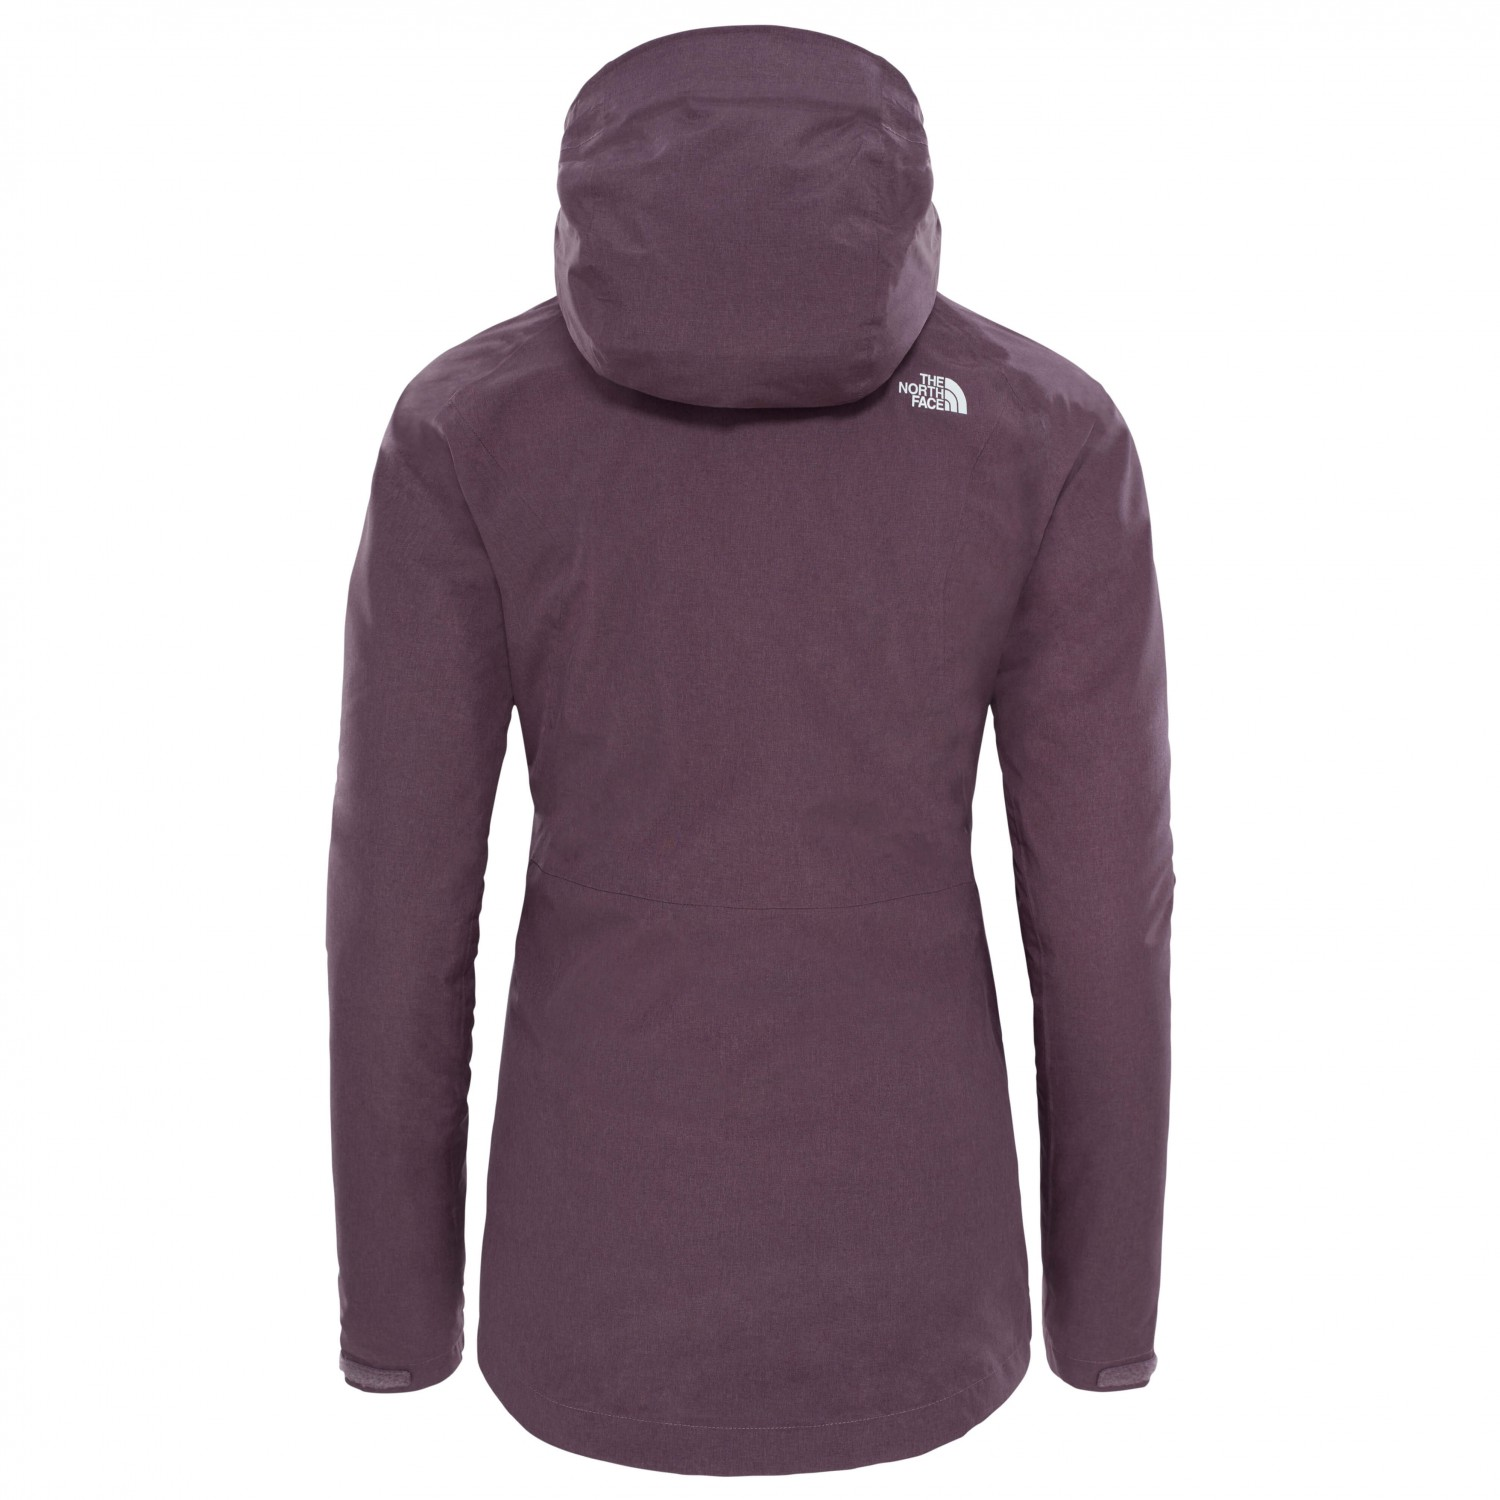 488717a44255 ... The North Face - Women s Naslund Triclimate Jacket - 3-in-1 jacket ...